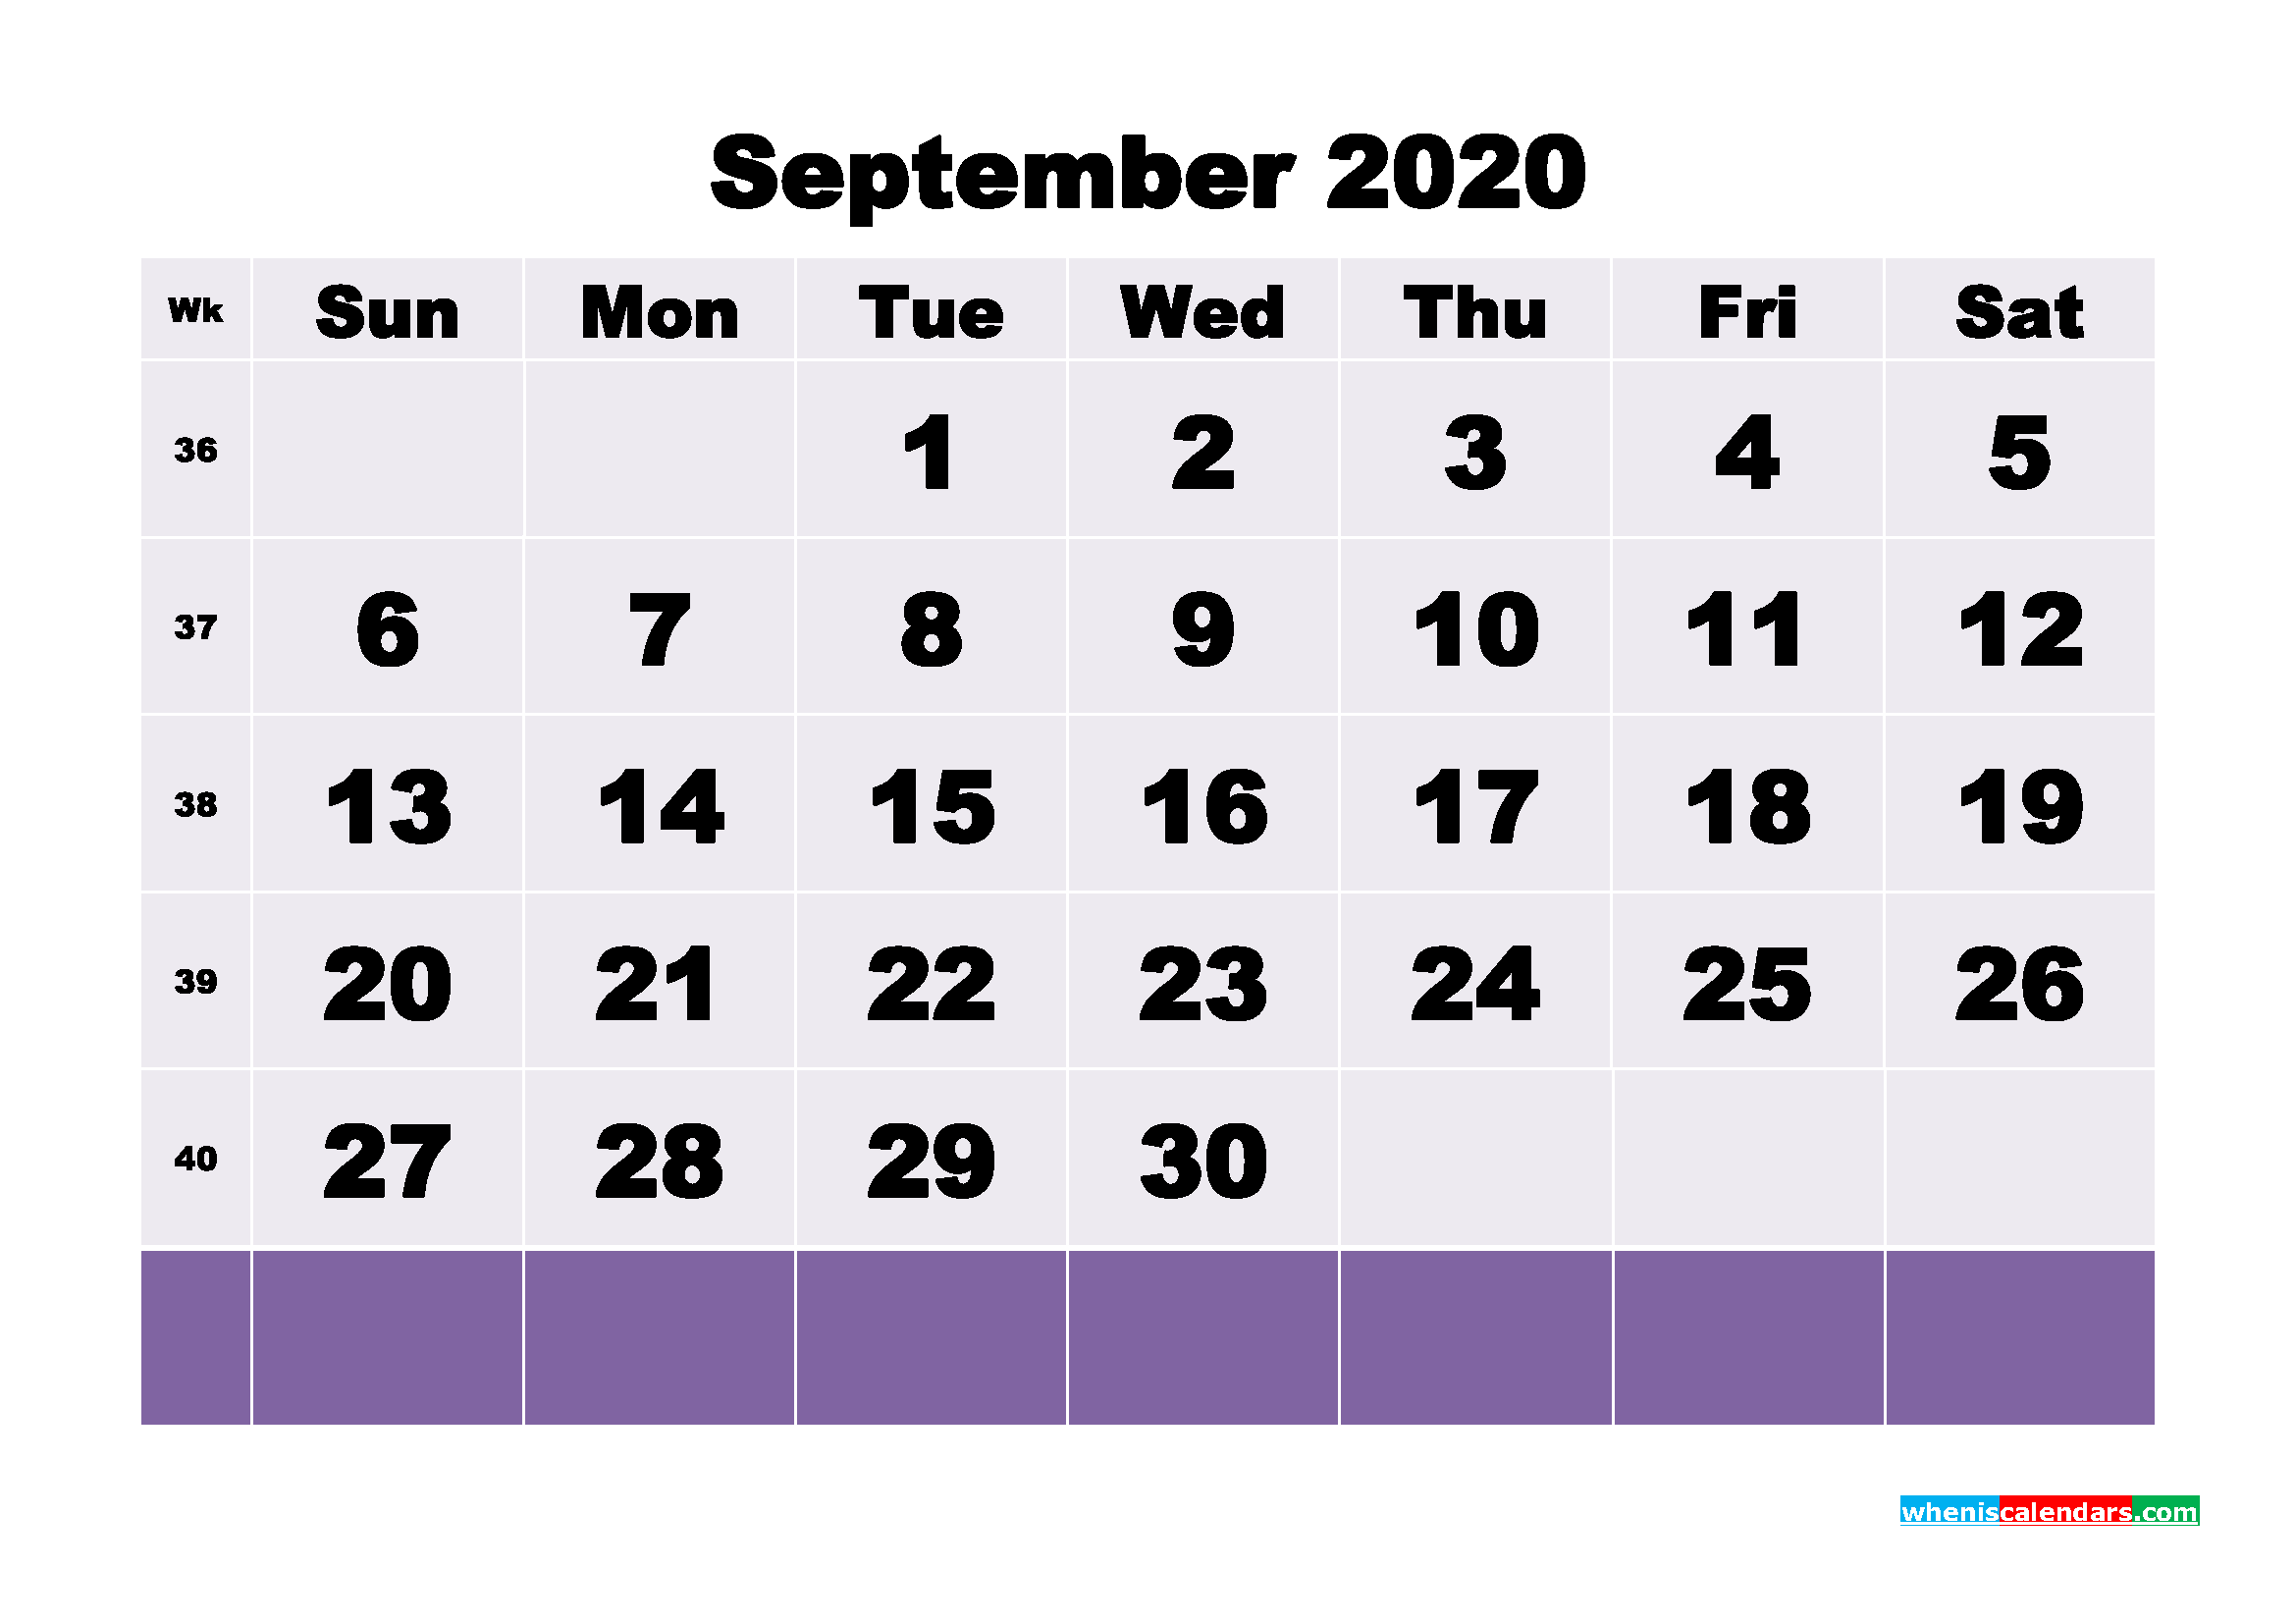 Blank September 2020 Calendar Printable - No.m20b129